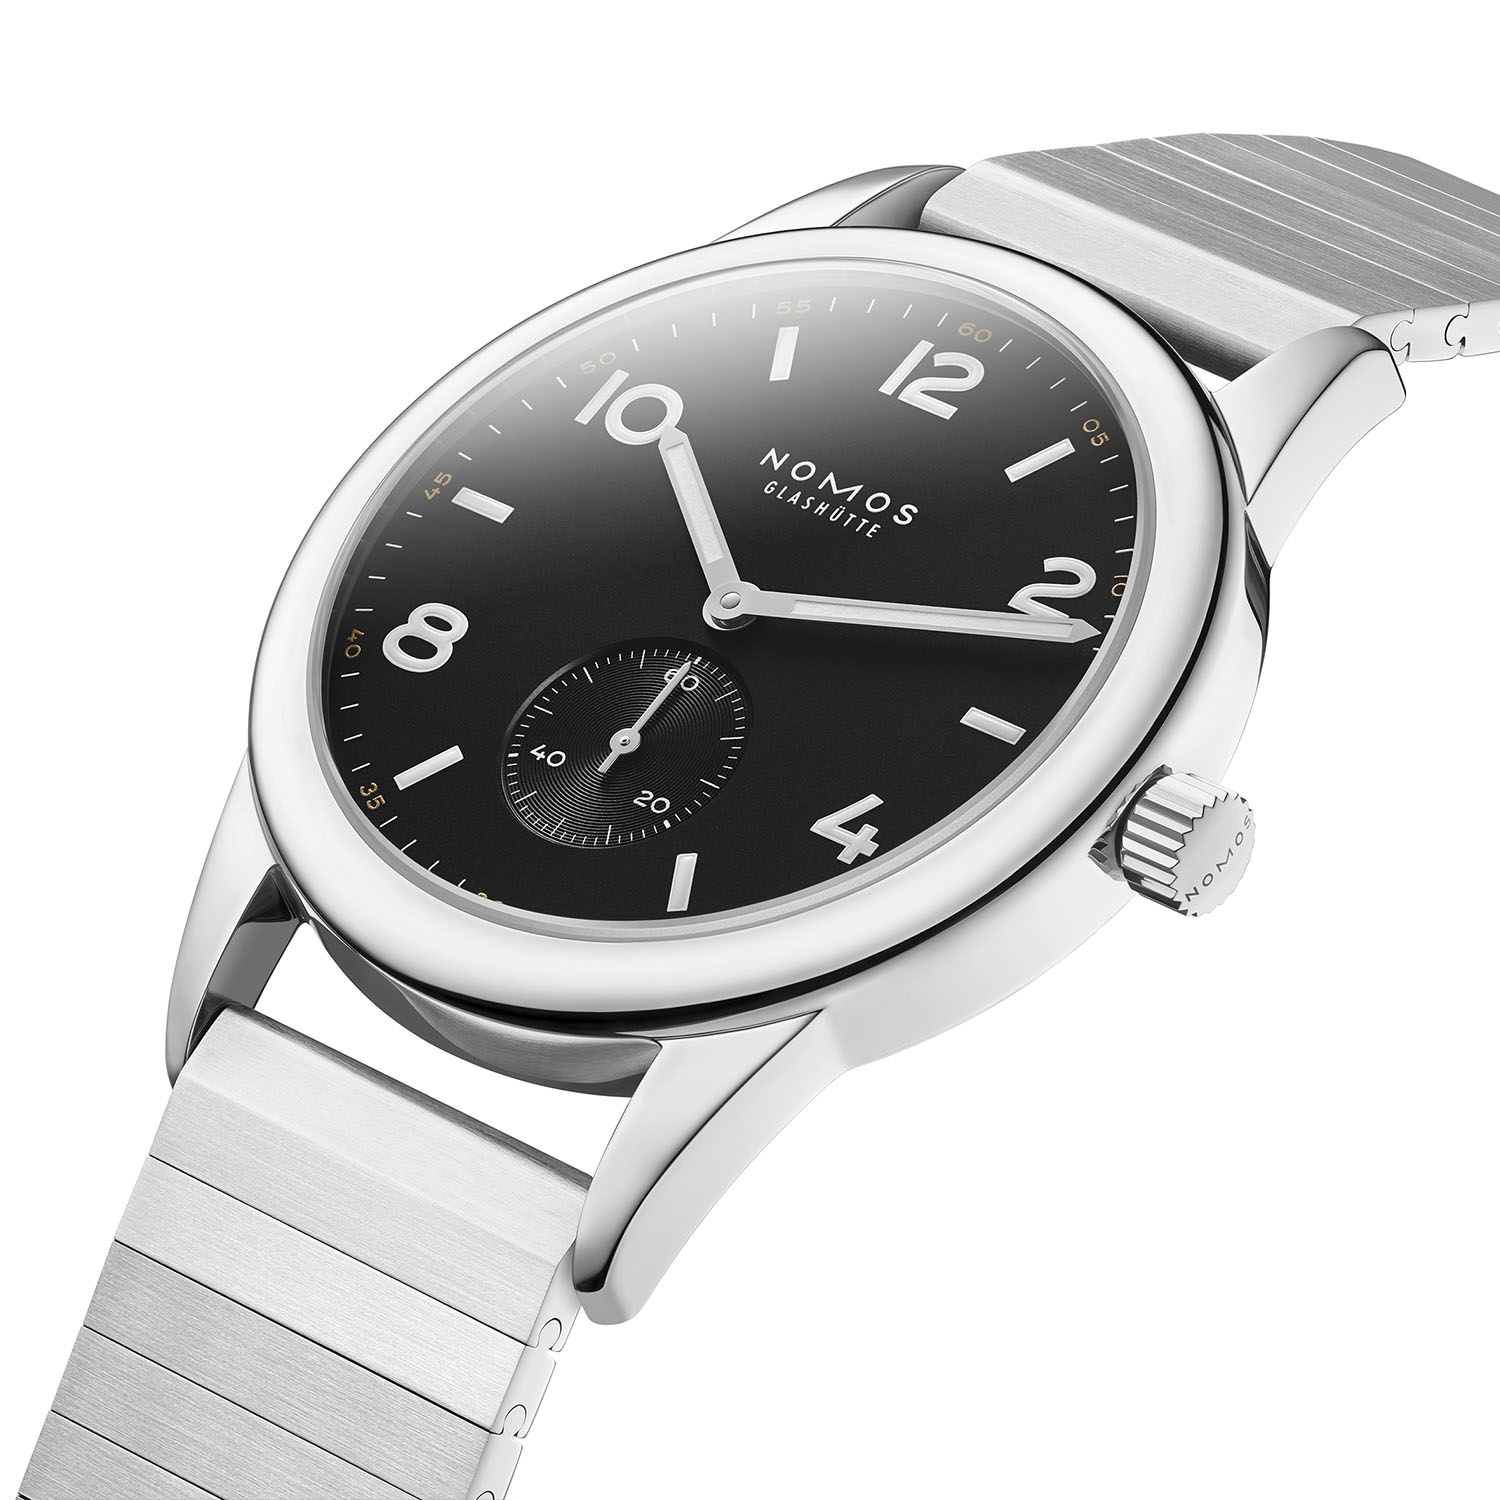 Nomos Club Automatic 175th anniversary limited editions 8